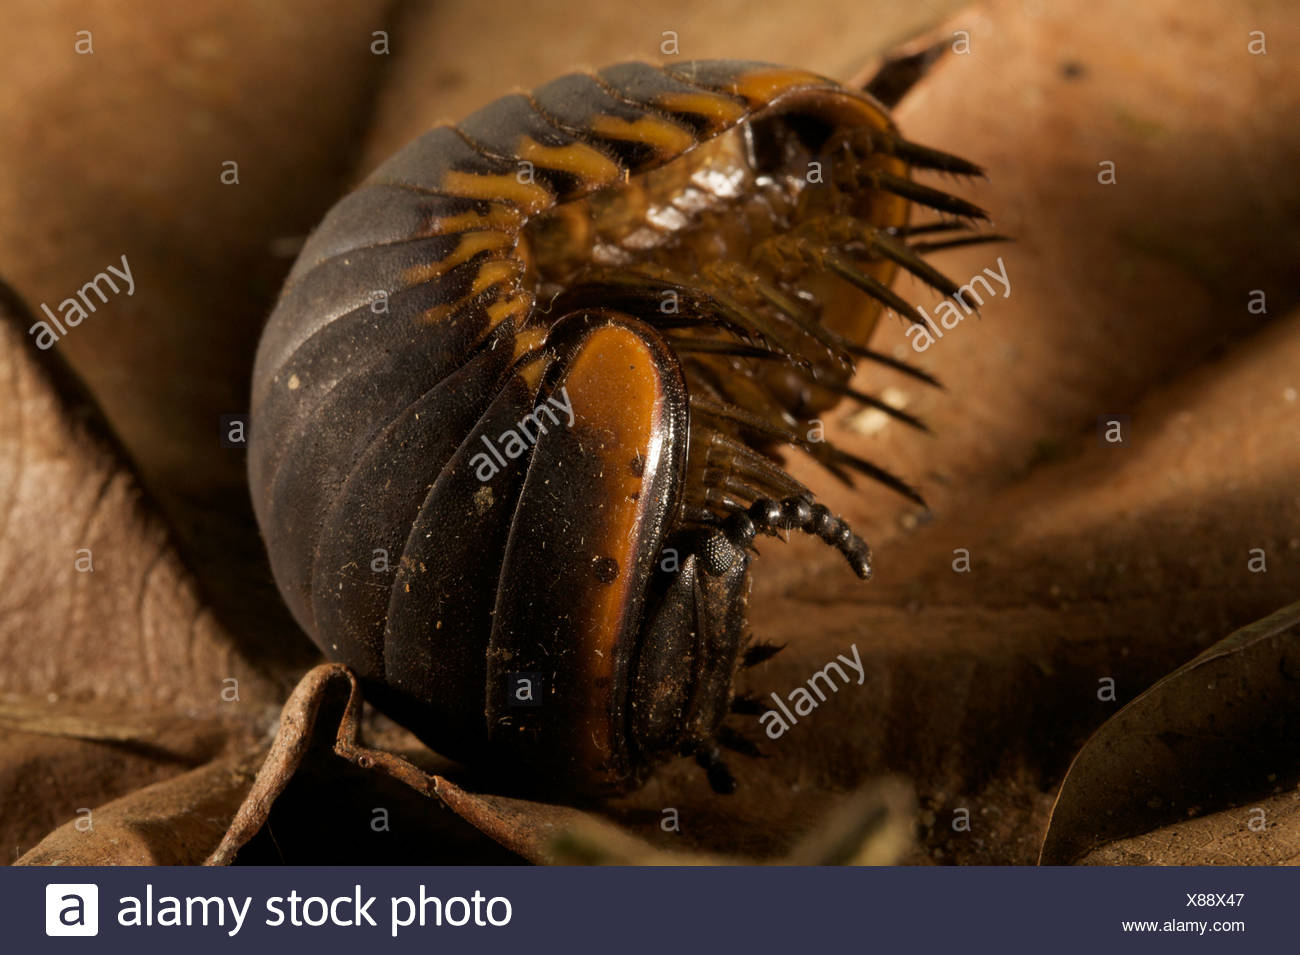 Close up of a giant pill miliepede opening up. - Stock Image